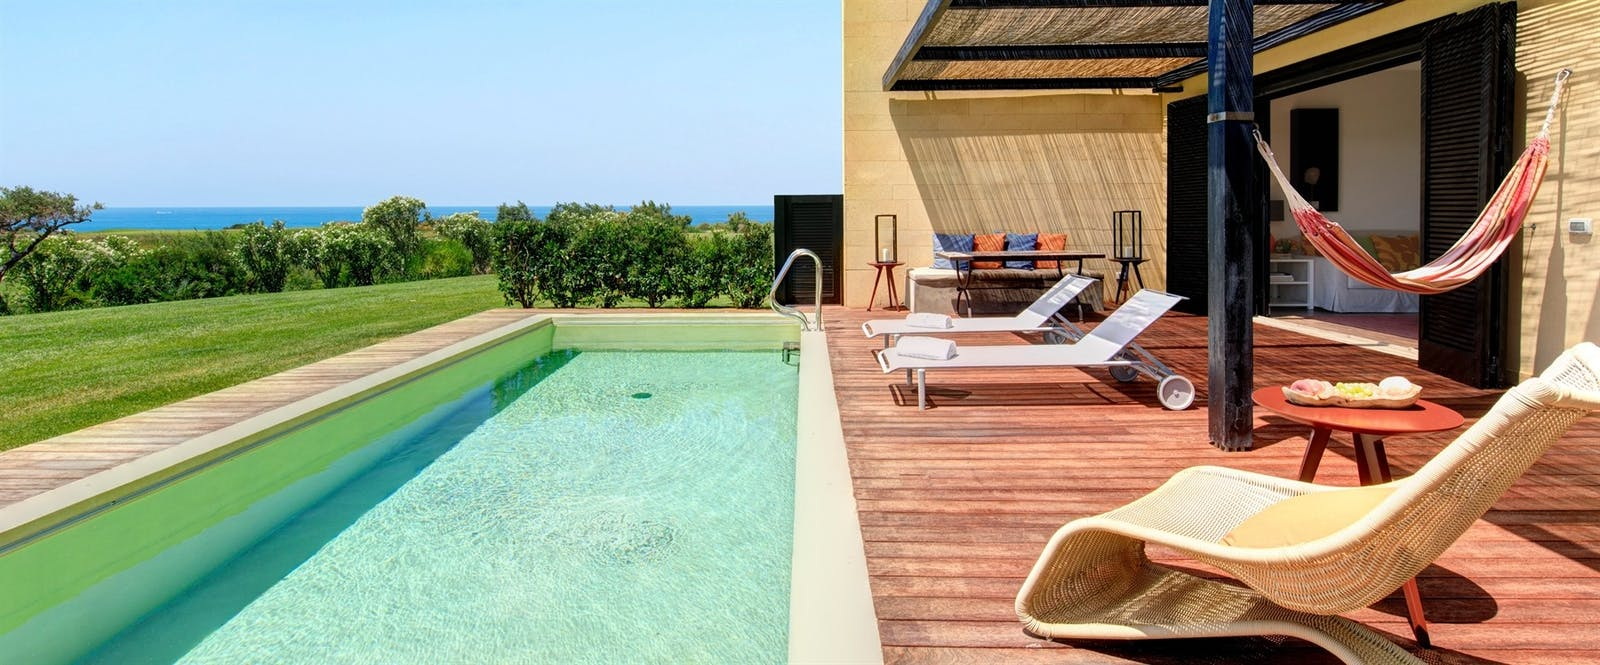 Villa Iris at Verdura Resort, Sicily, Italy